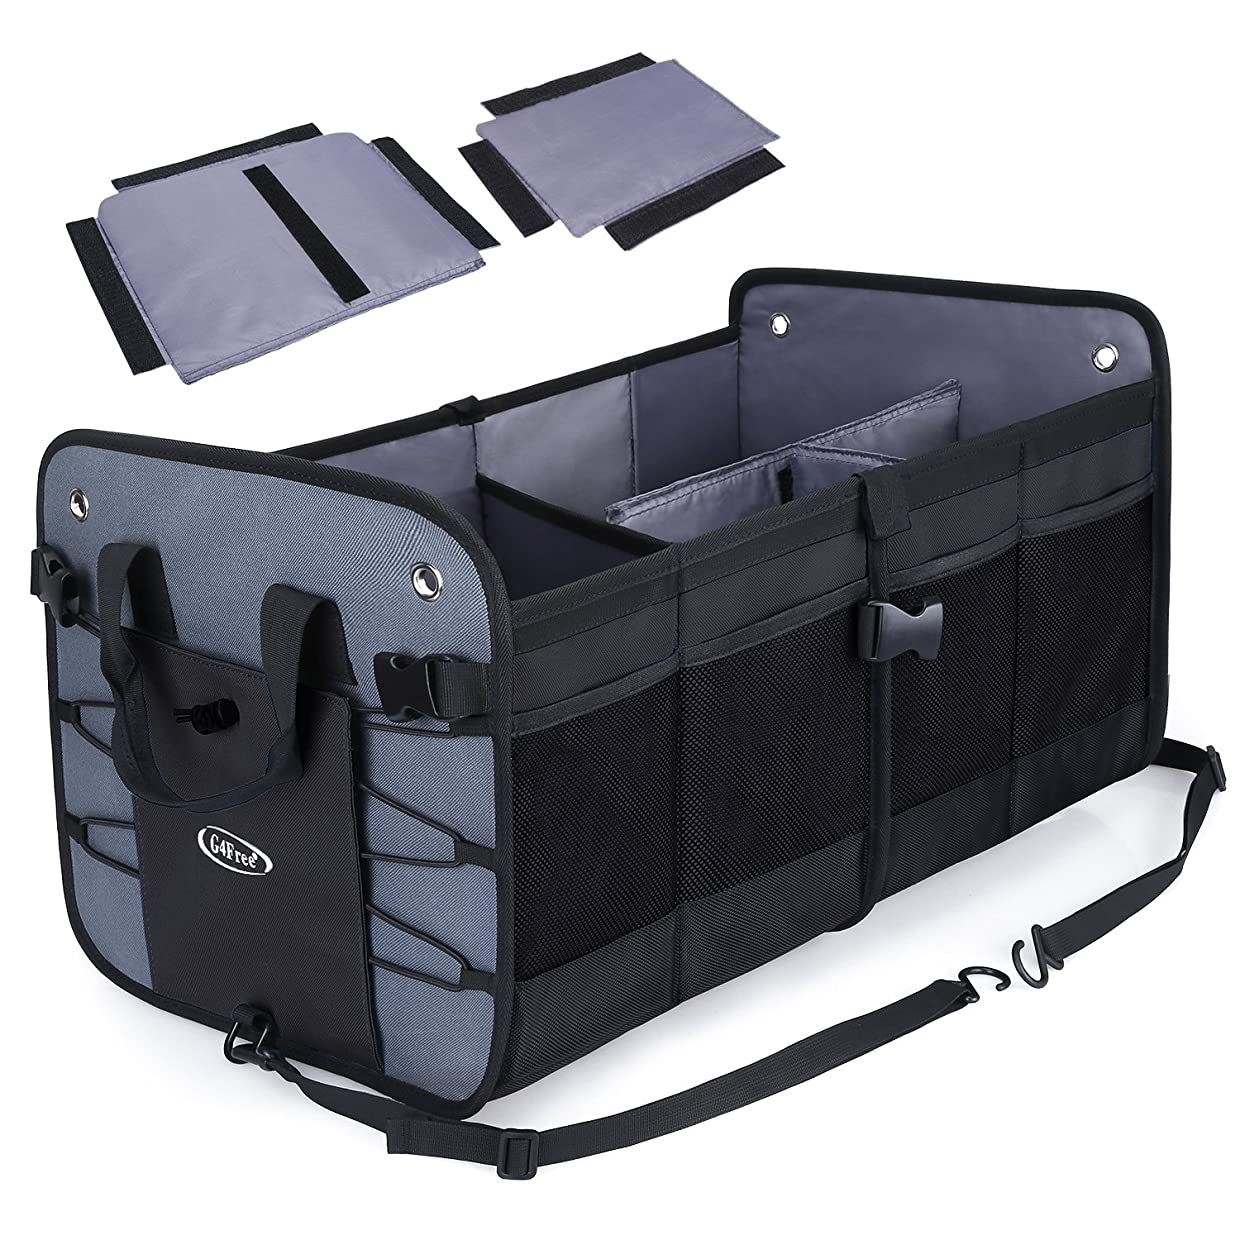 G4Free Trunk Organizer- Collapsible Auto Car & SUV Cargo Storage Container, Eco-Friendly Heavy Duty Waterproof Storage Bin and Carrier 66L for SUV, Truck, Auto, Vehicle(Black) cokmpychjt1